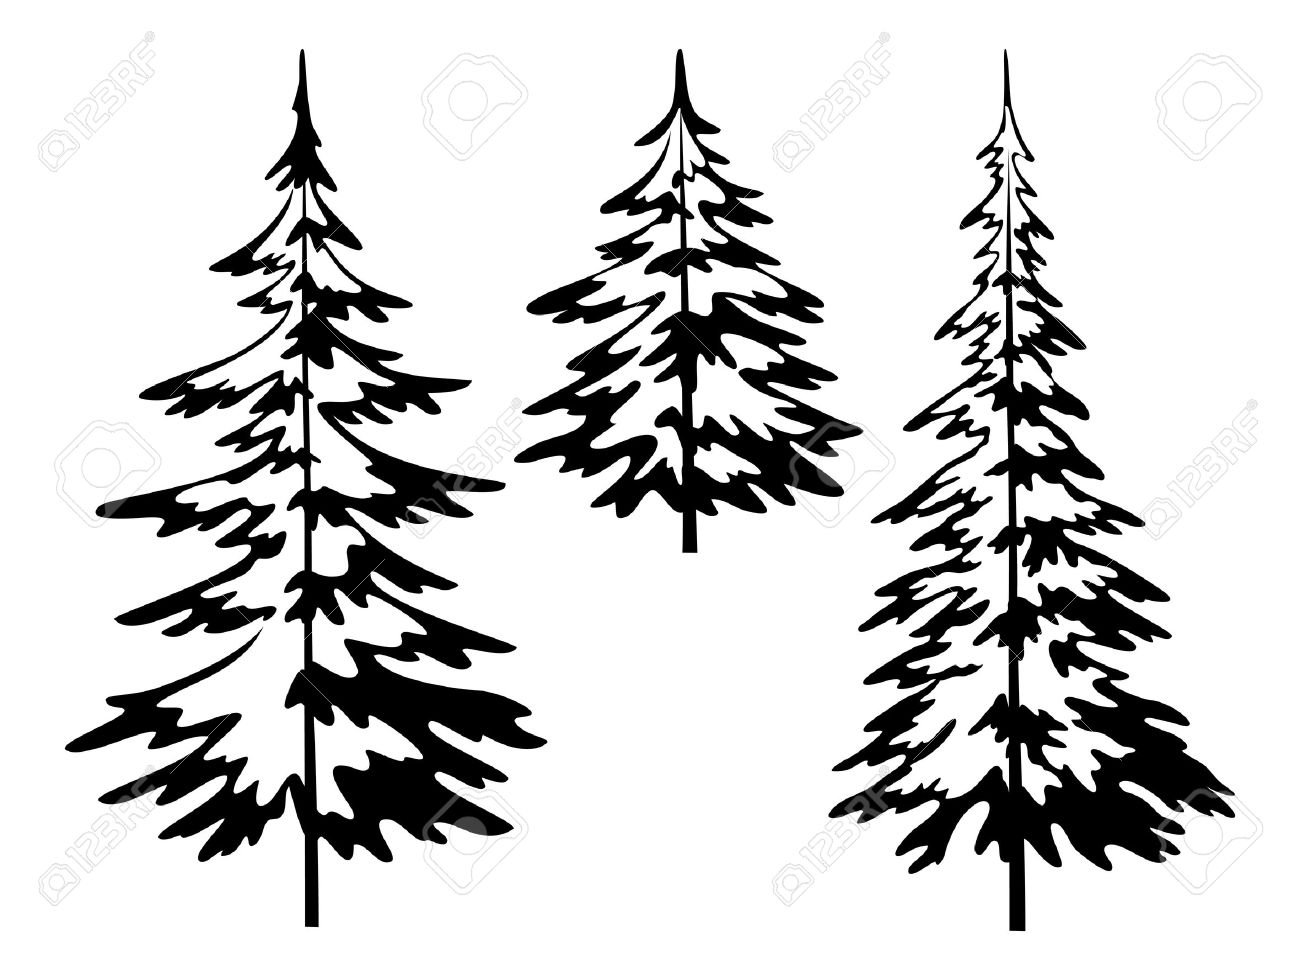 Realistic christmas tree drawing - Christmas Tree Outline Christmas Fir Trees Symbolical Pictogram Black Contours Isolated On White